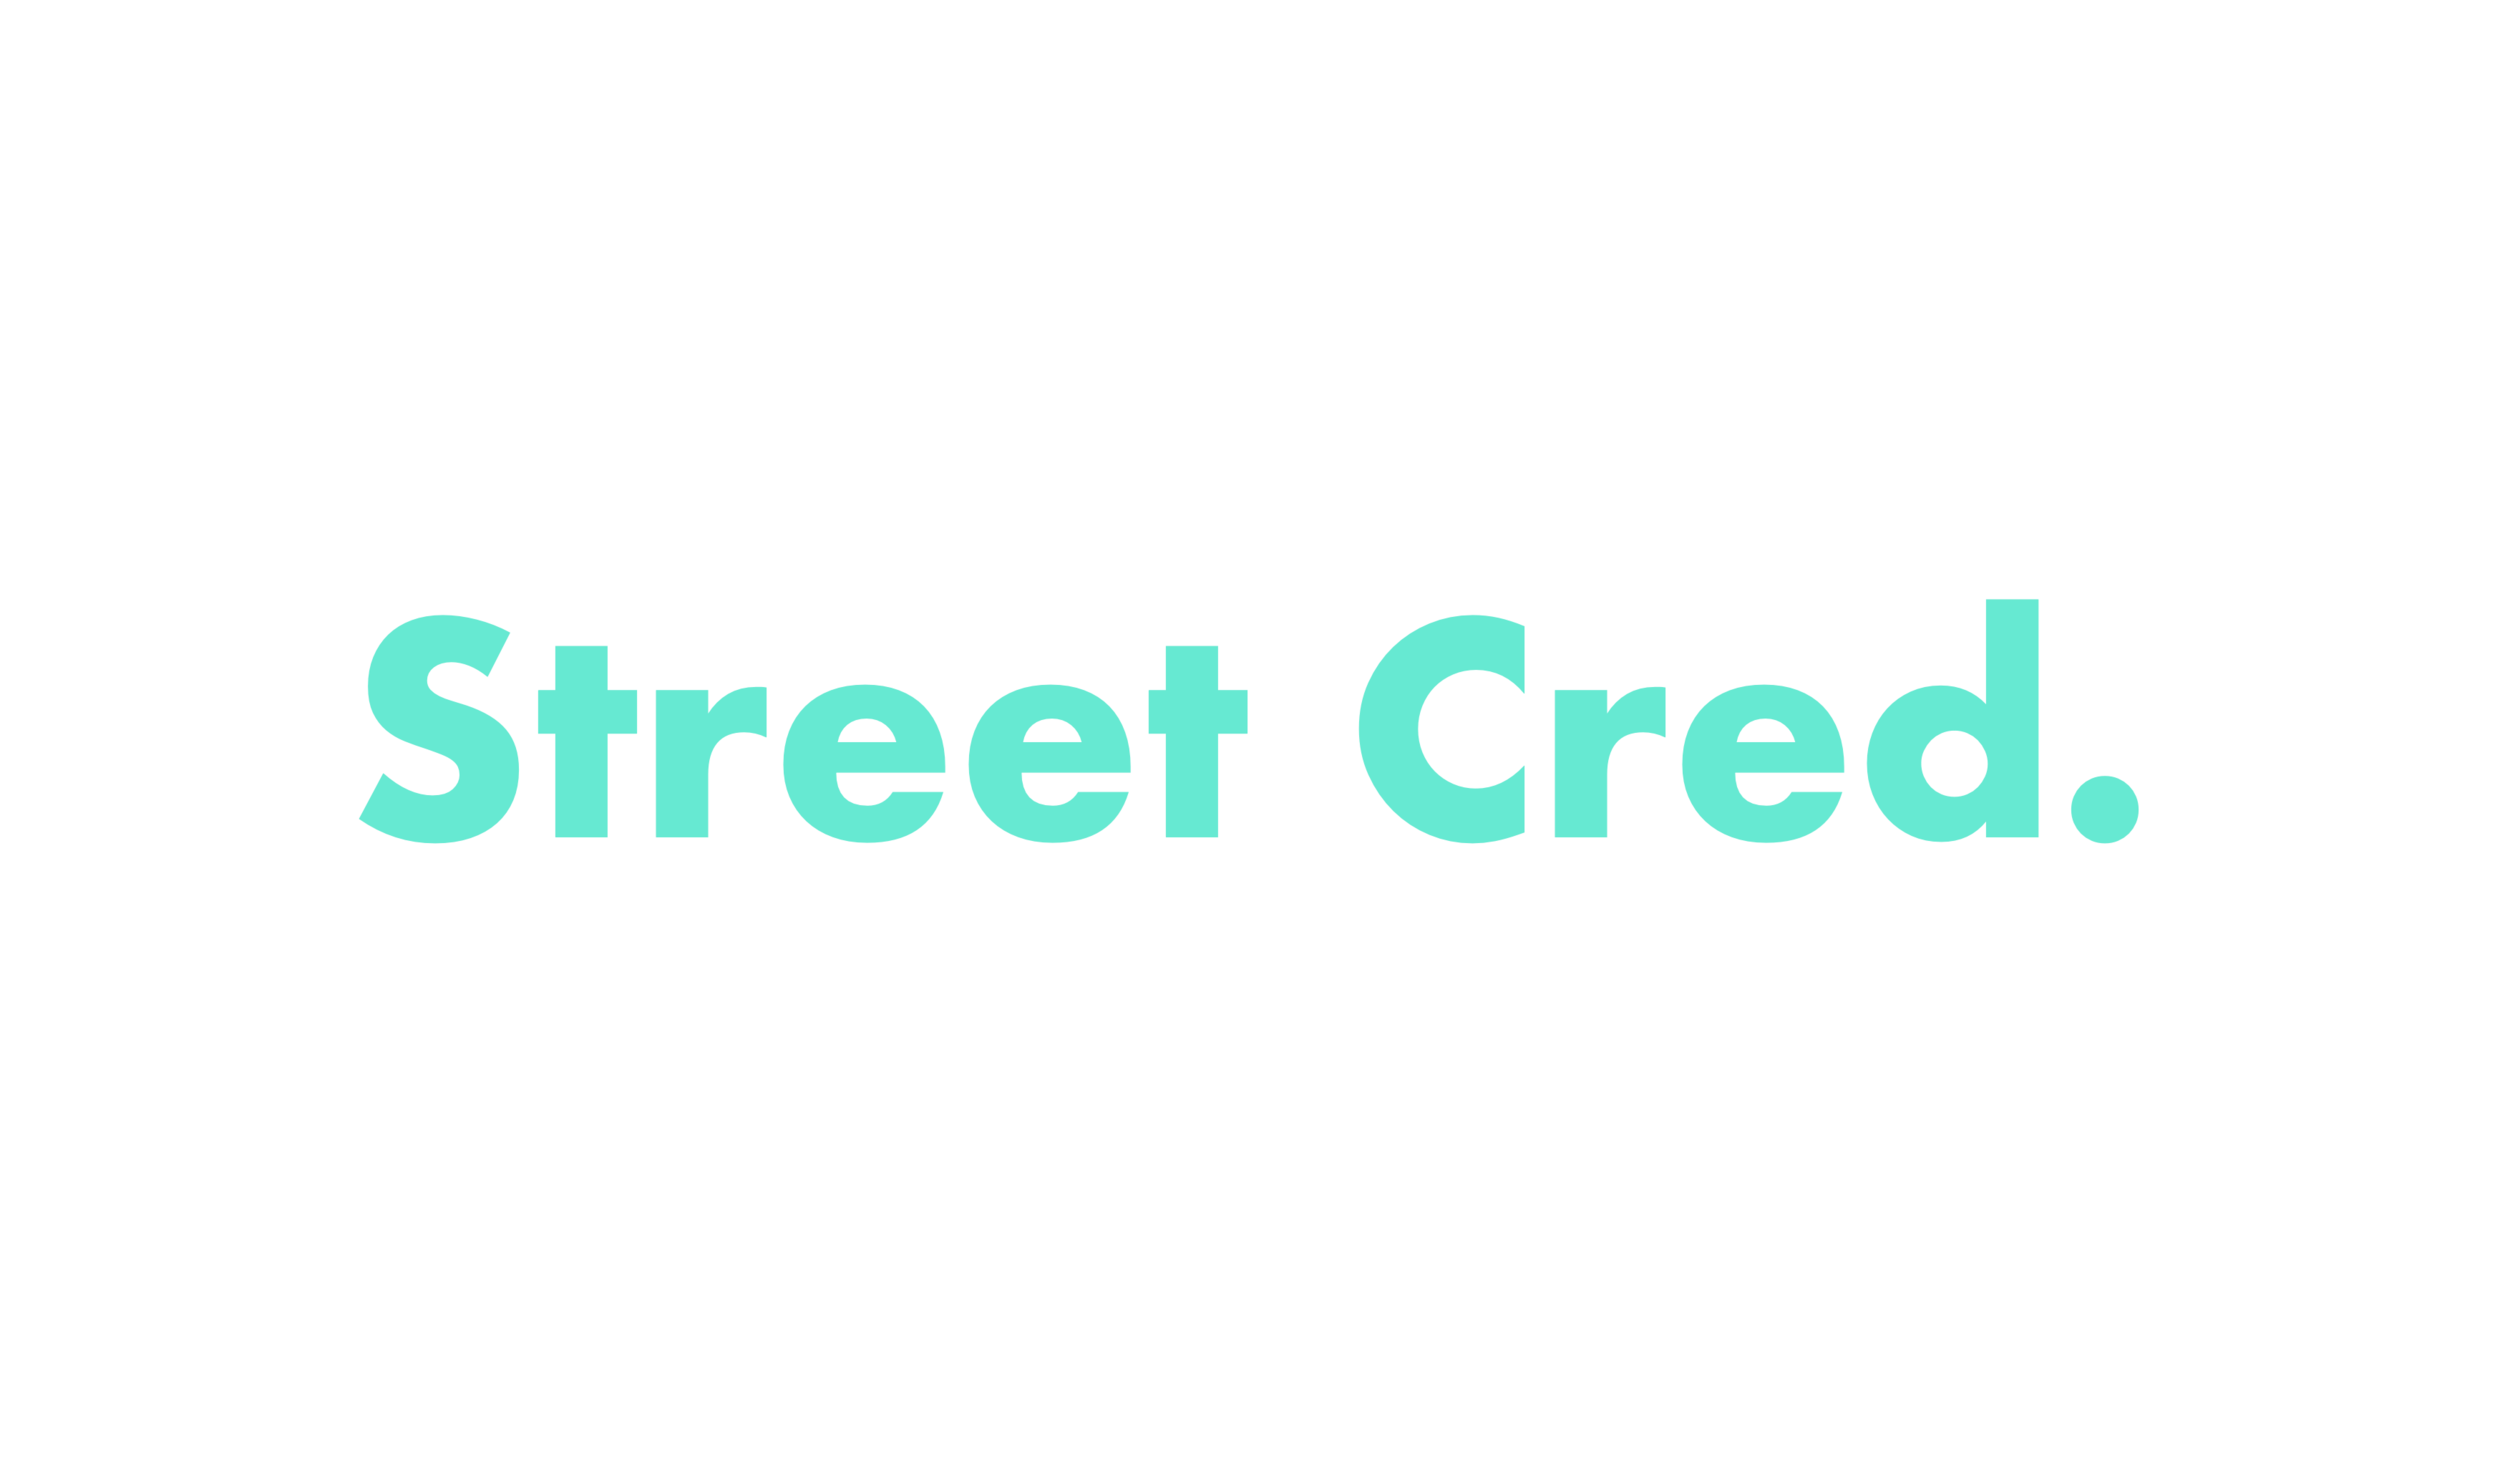 street_cred.png